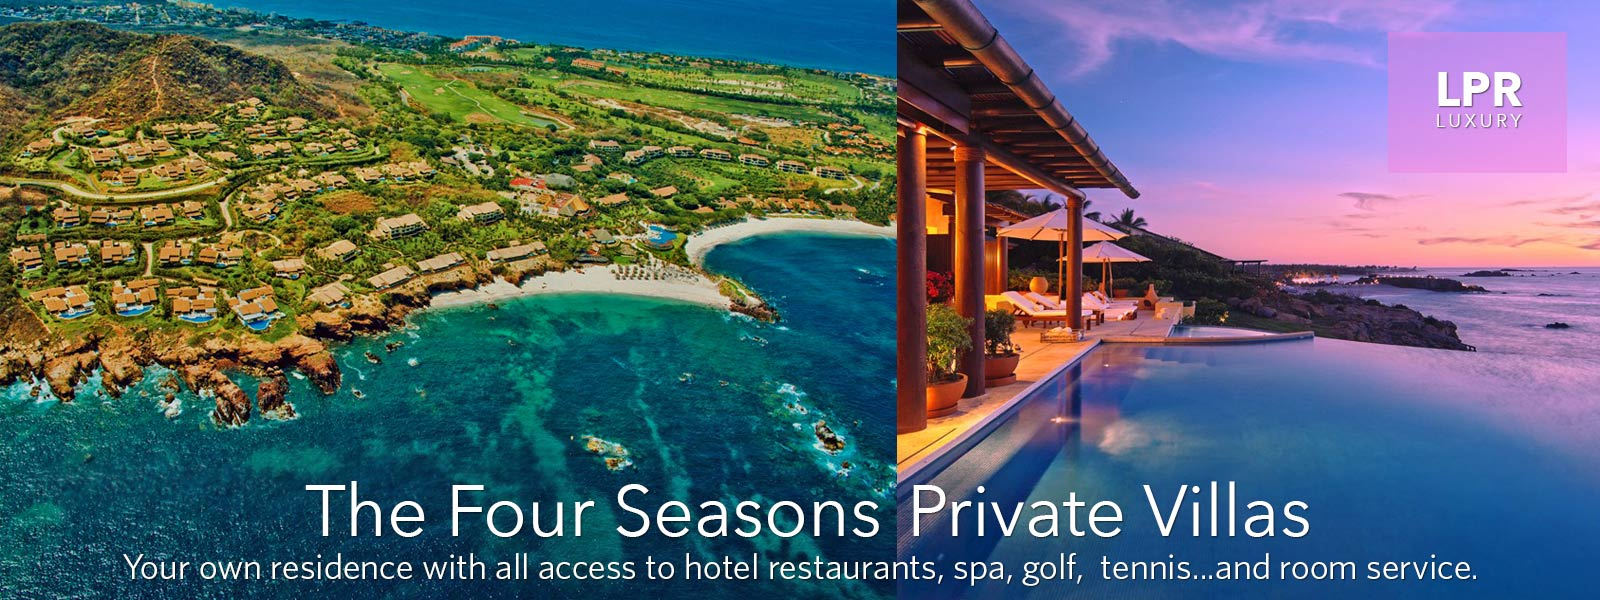 four seasons private villas explore punta mita mexico puerto vallarta riviera nayarit